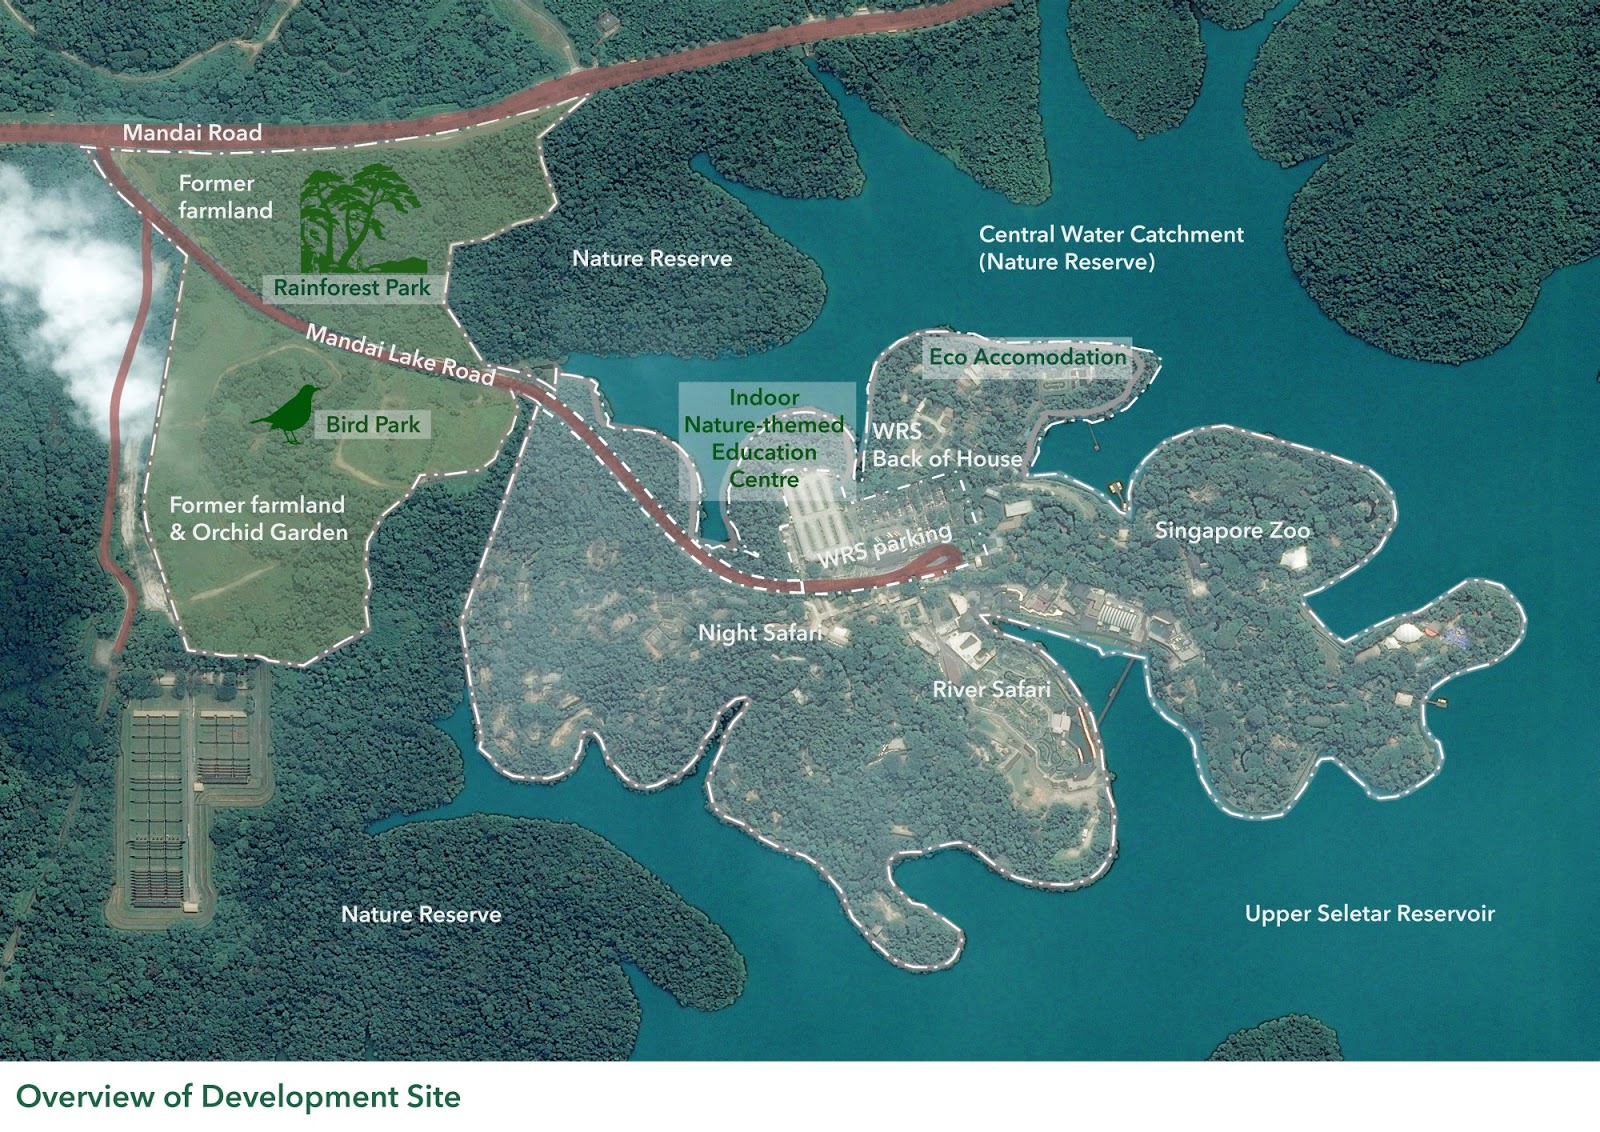 When the Mandai nature precinct is complete by 2023, two new wildlife parks - the Rainforest Park and the Bird Park - will join the existing trio: the Singapore Zoo, the River Safari and the Night Safari.<br>